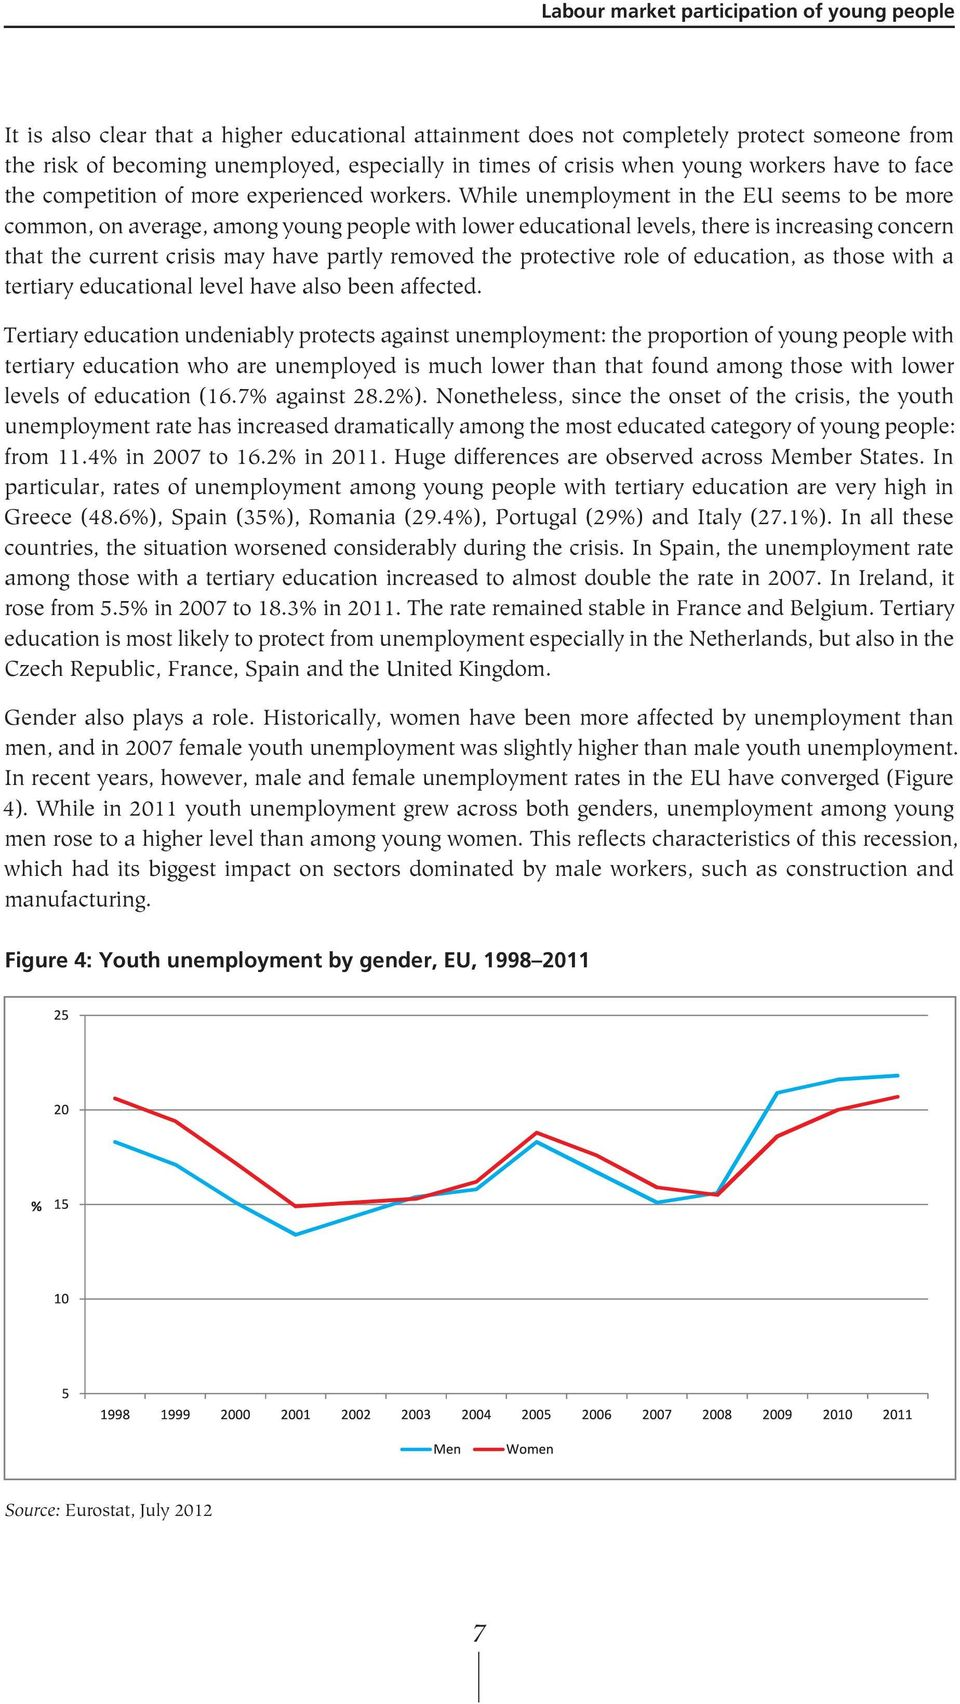 While unemployment in the EU seems to be more common, on average, among young people with lower educational levels, there is increasing concern that the current crisis may have partly removed the